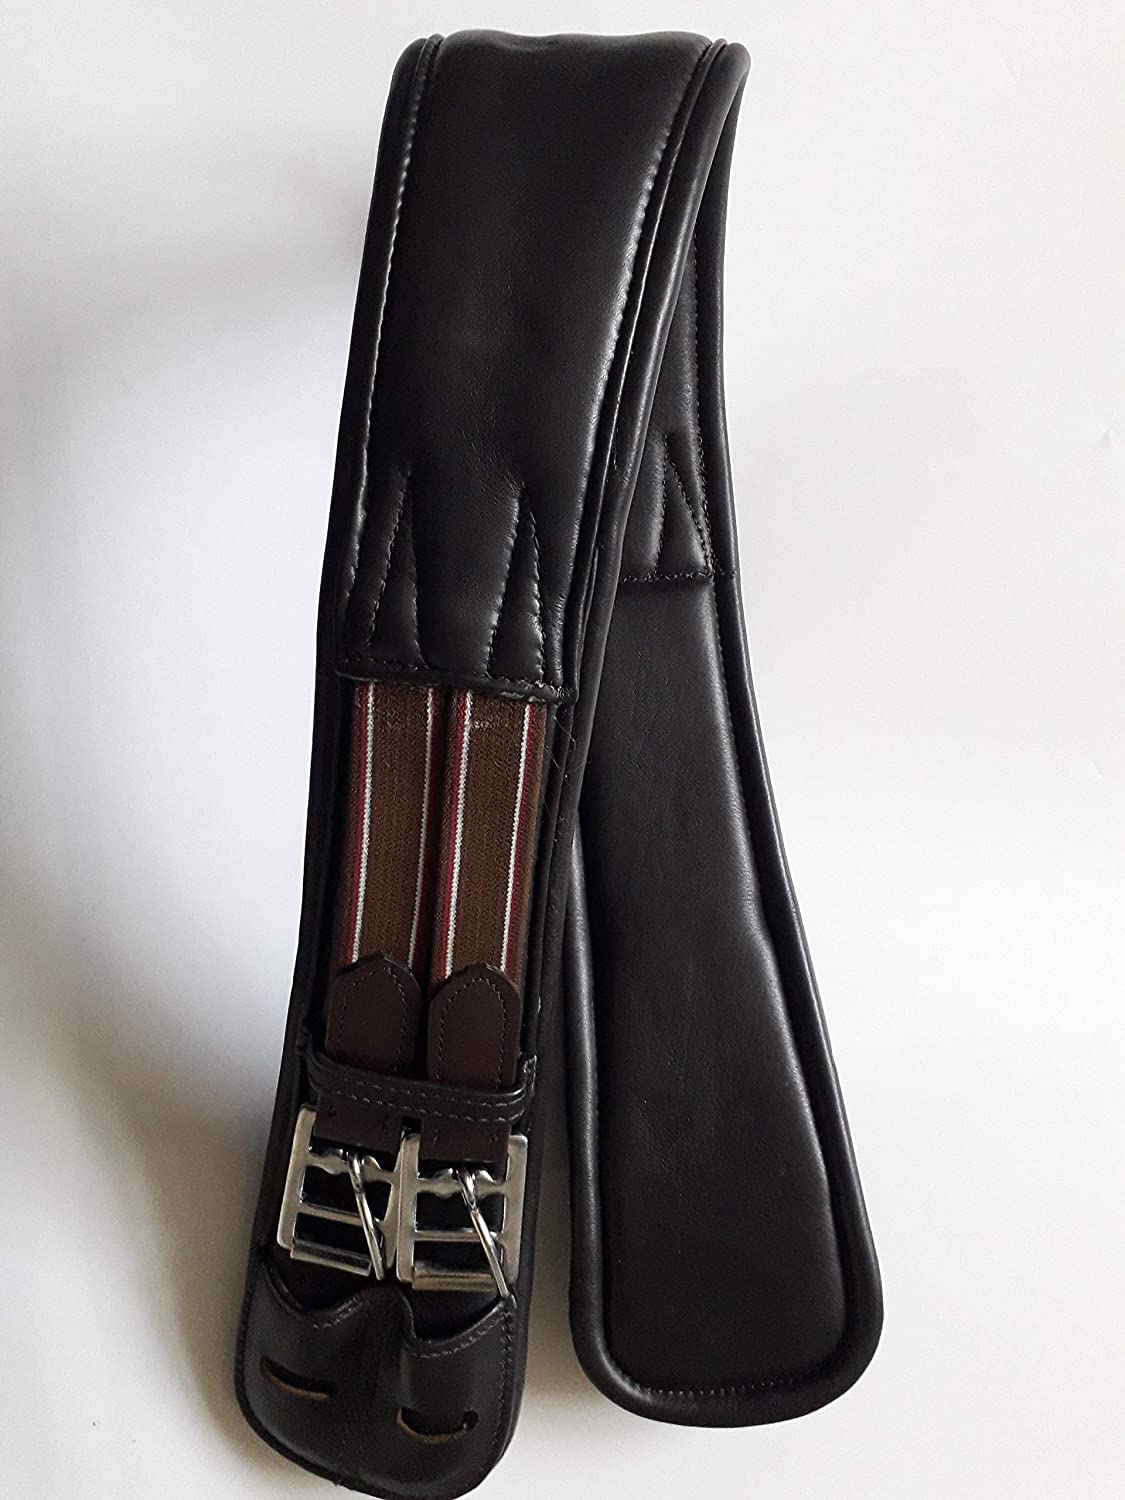 30, Black A/&S Equestrian Horse Cob Leather Girth Dressage//Eventing Short Girth Anatomical Shaped